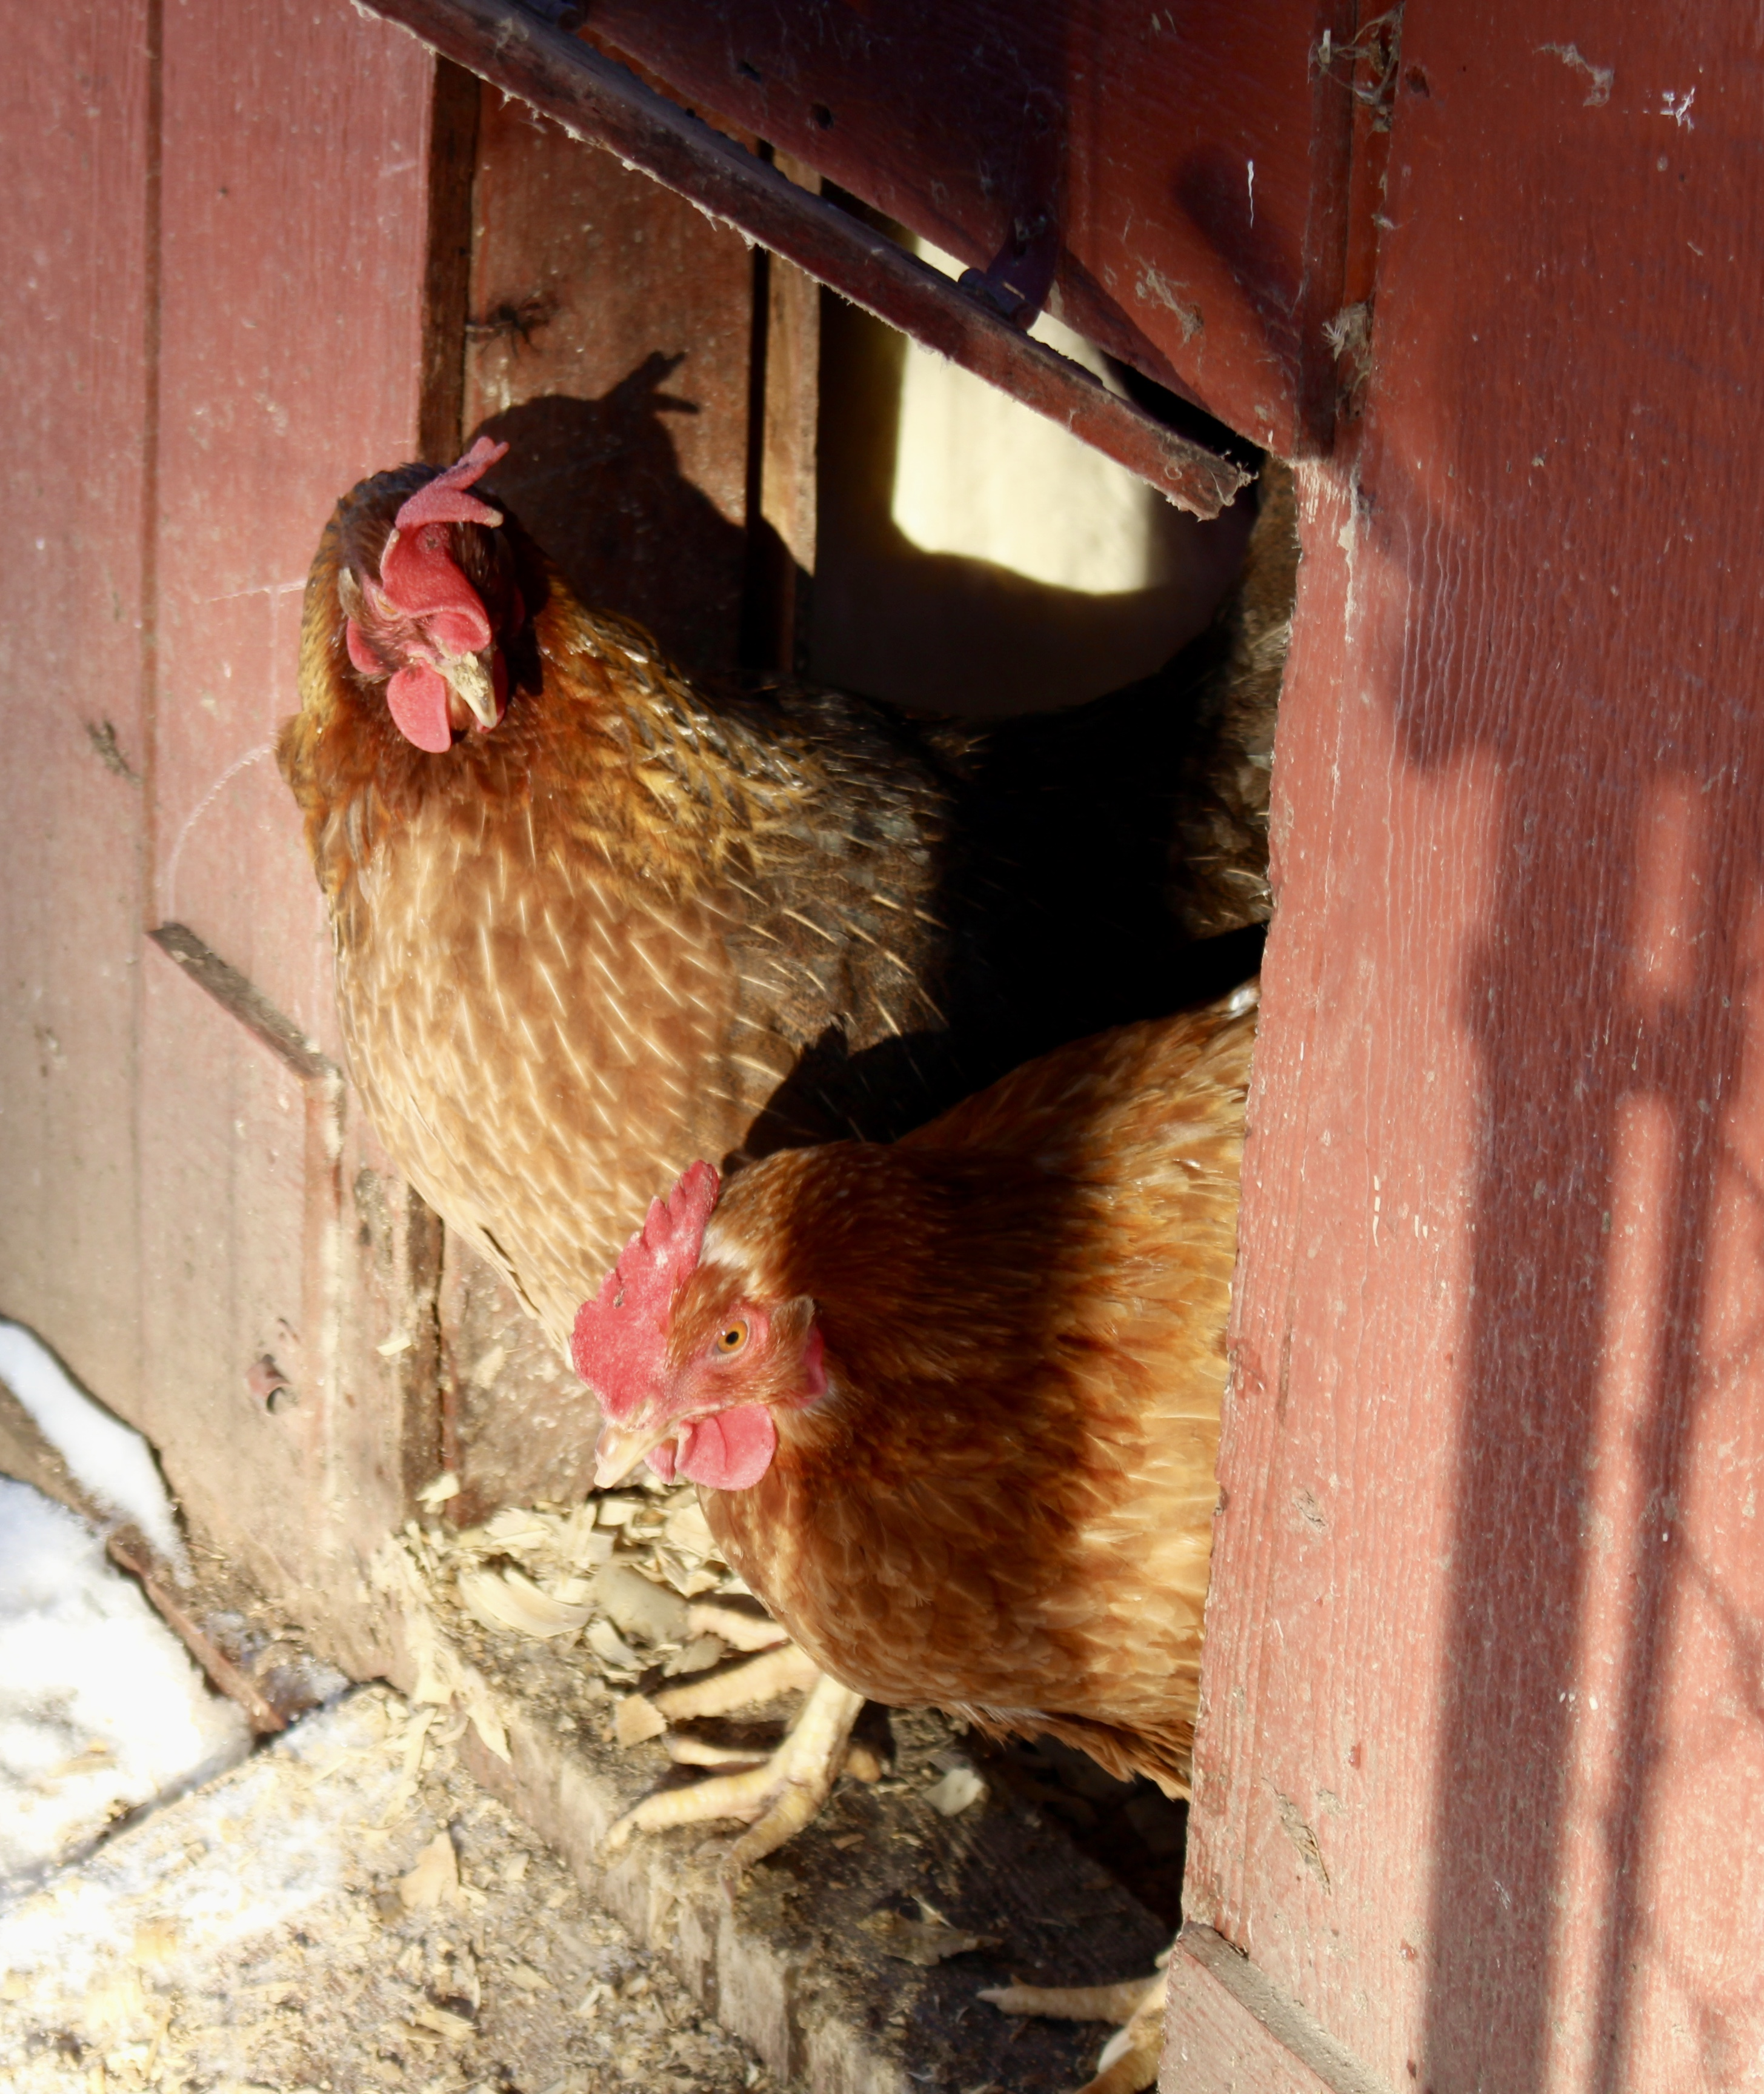 On sunny days we open up the chicken coop so our sweet hens can sun themselves.